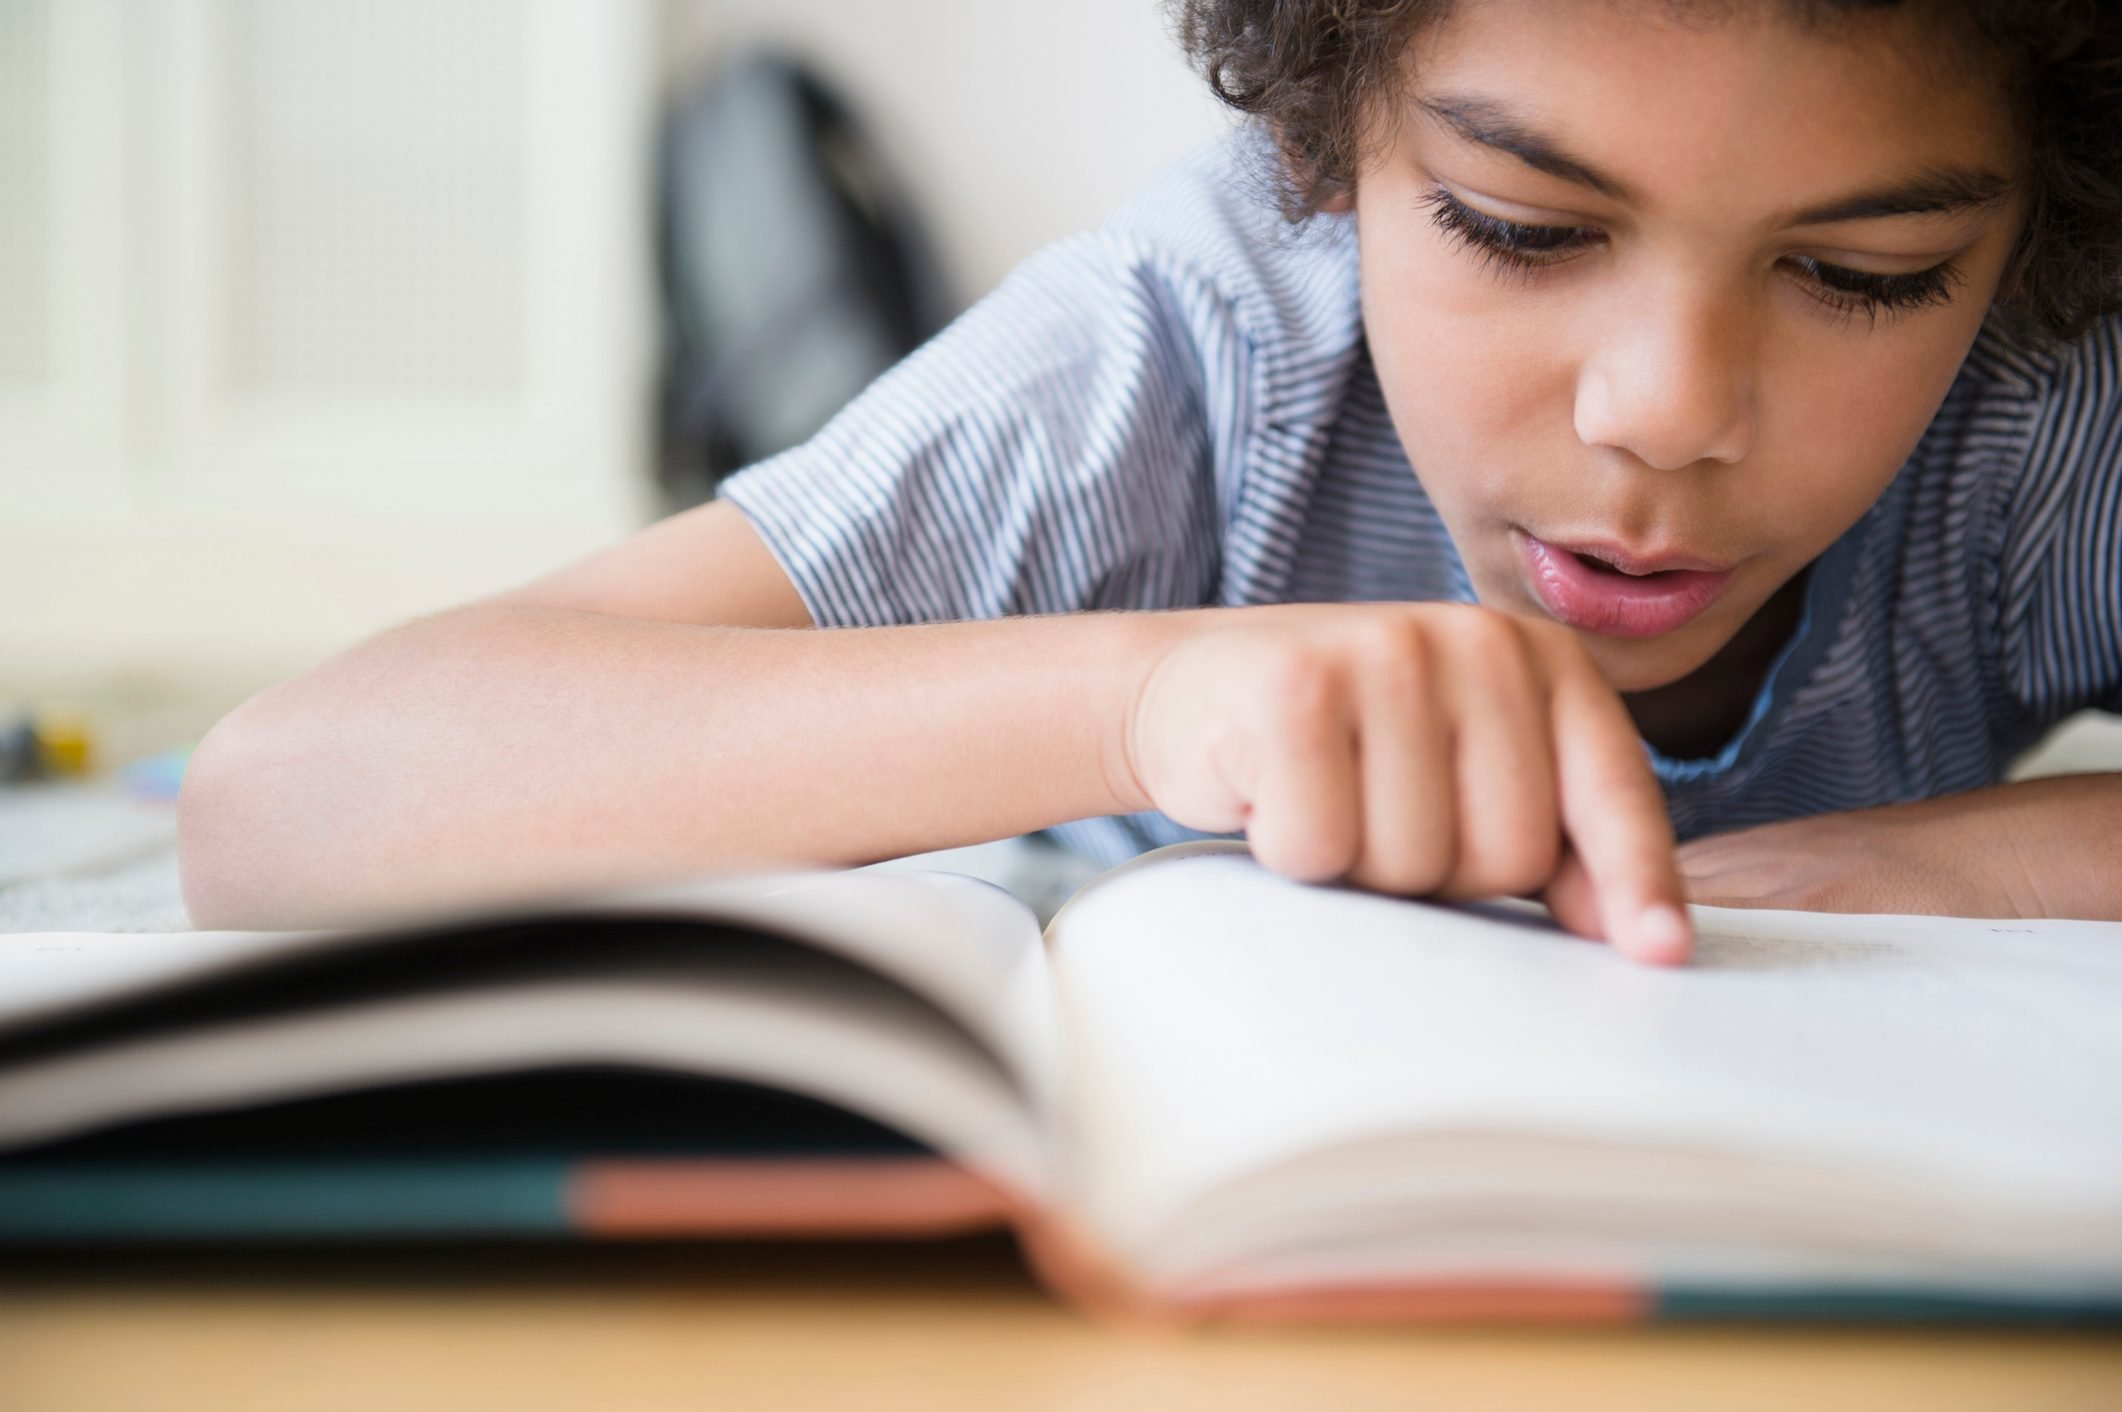 young boy reading a book close up